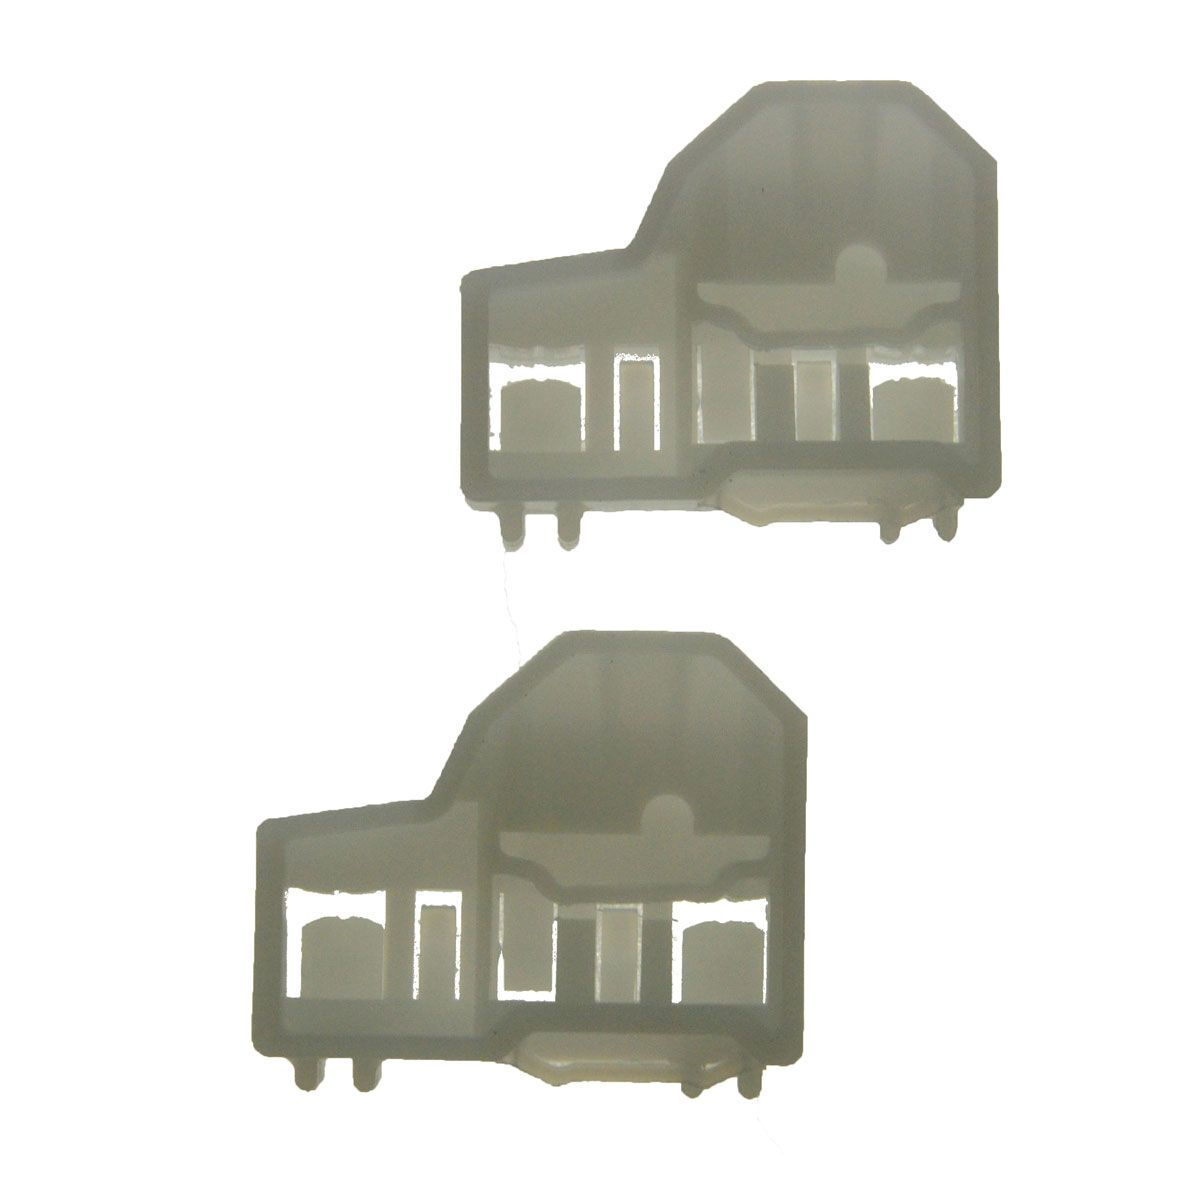 Window regulator guide clip pair set for pontiac grand am for 2000 grand am window regulator